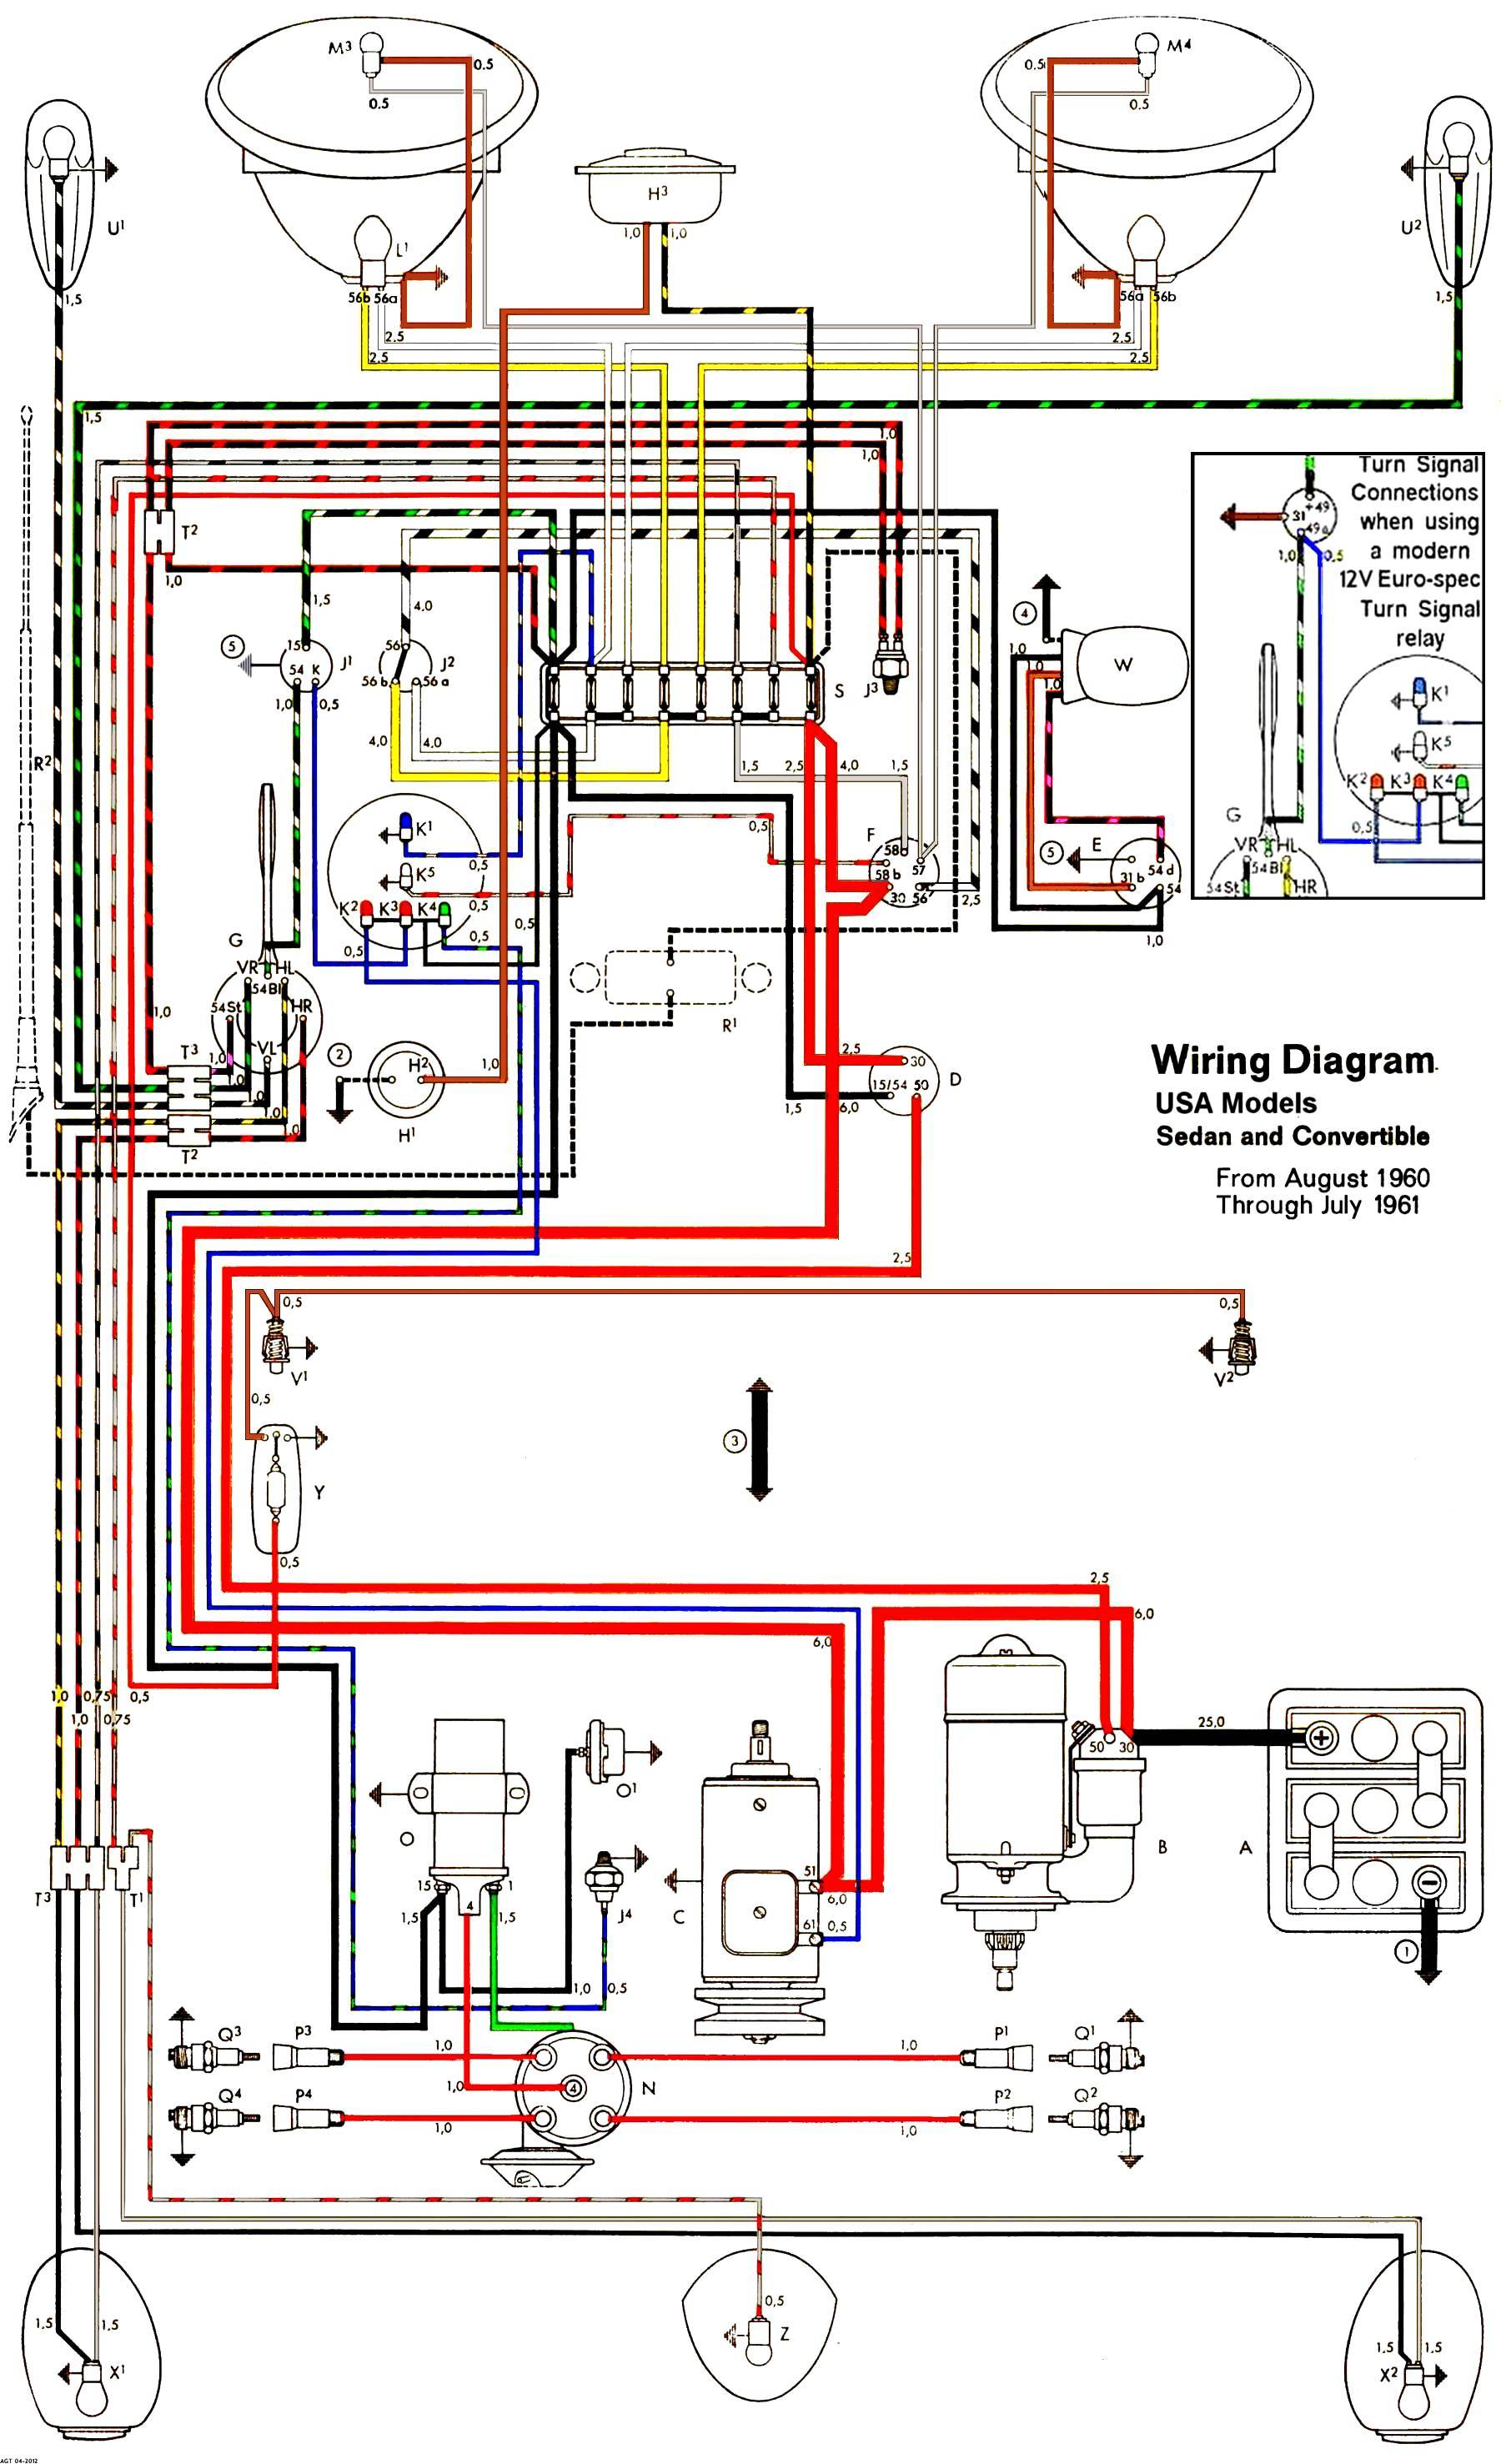 1961USA T1 1970 vw beetle charging wiring diagram free download wiring